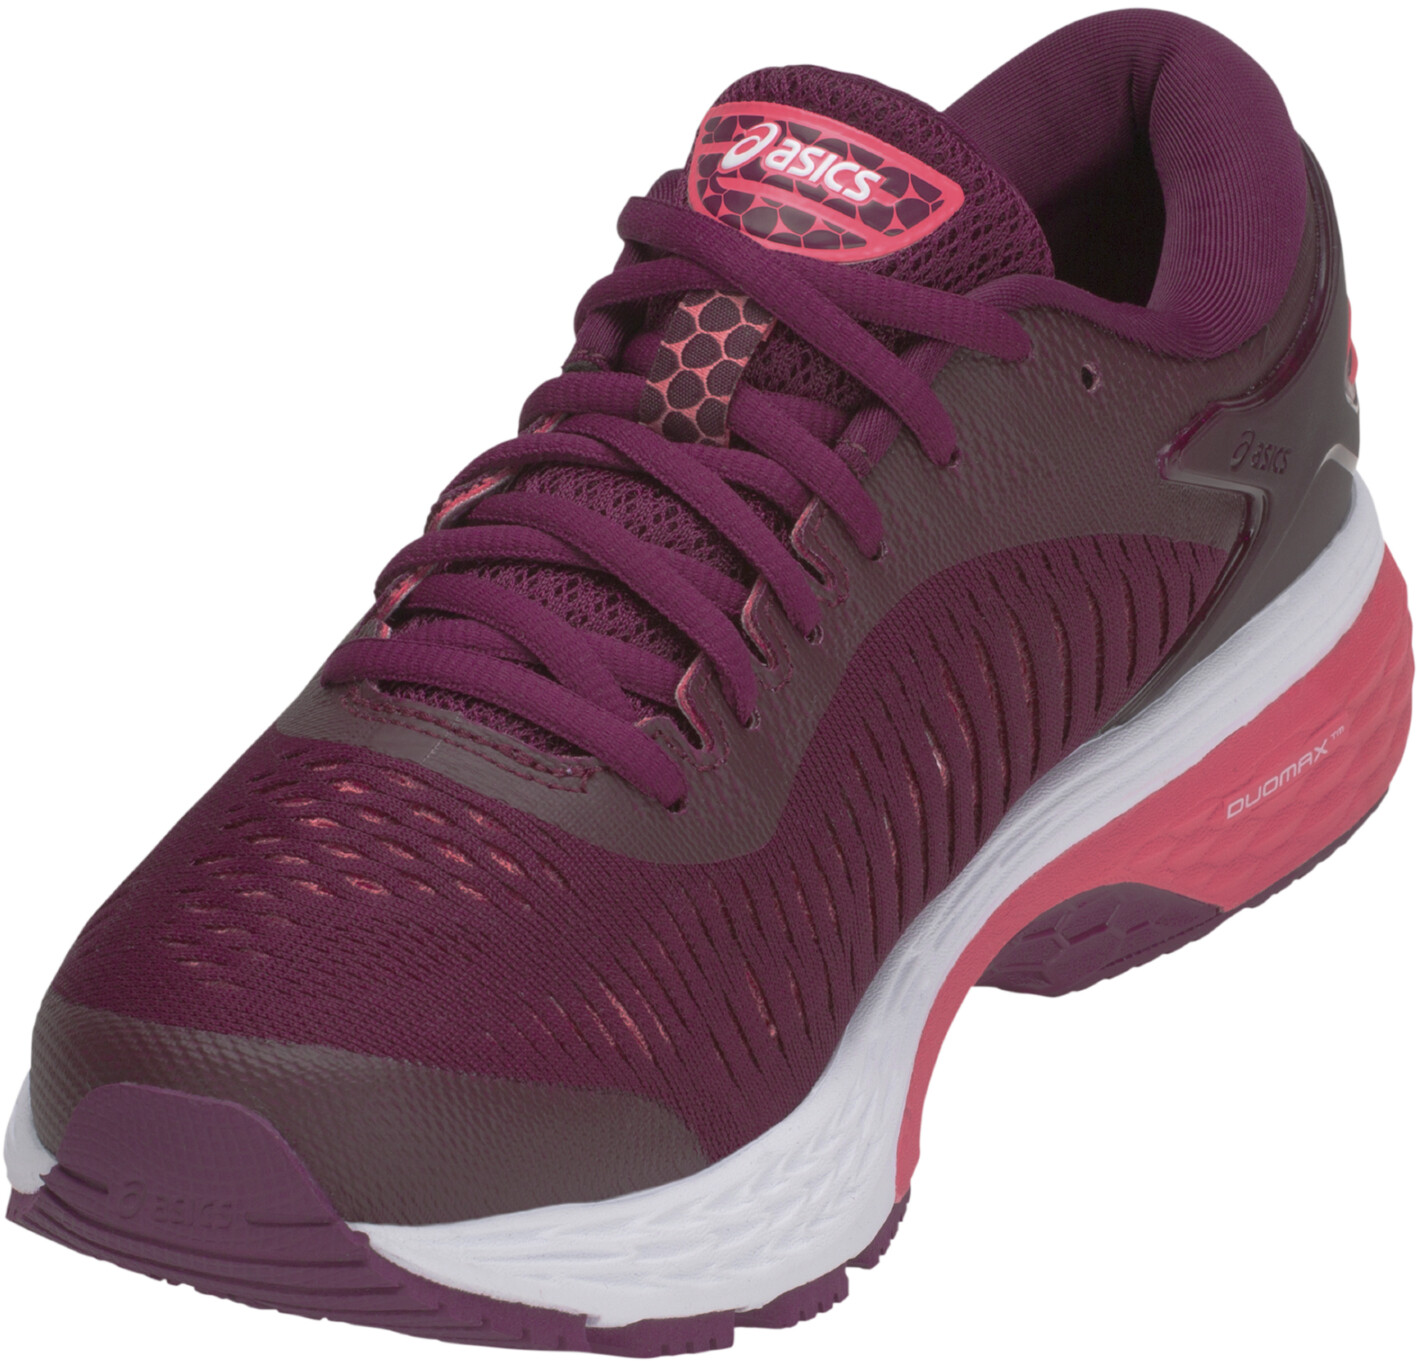 asics Gel-Kayano 25 Shoes Damen roselle/pink cameo